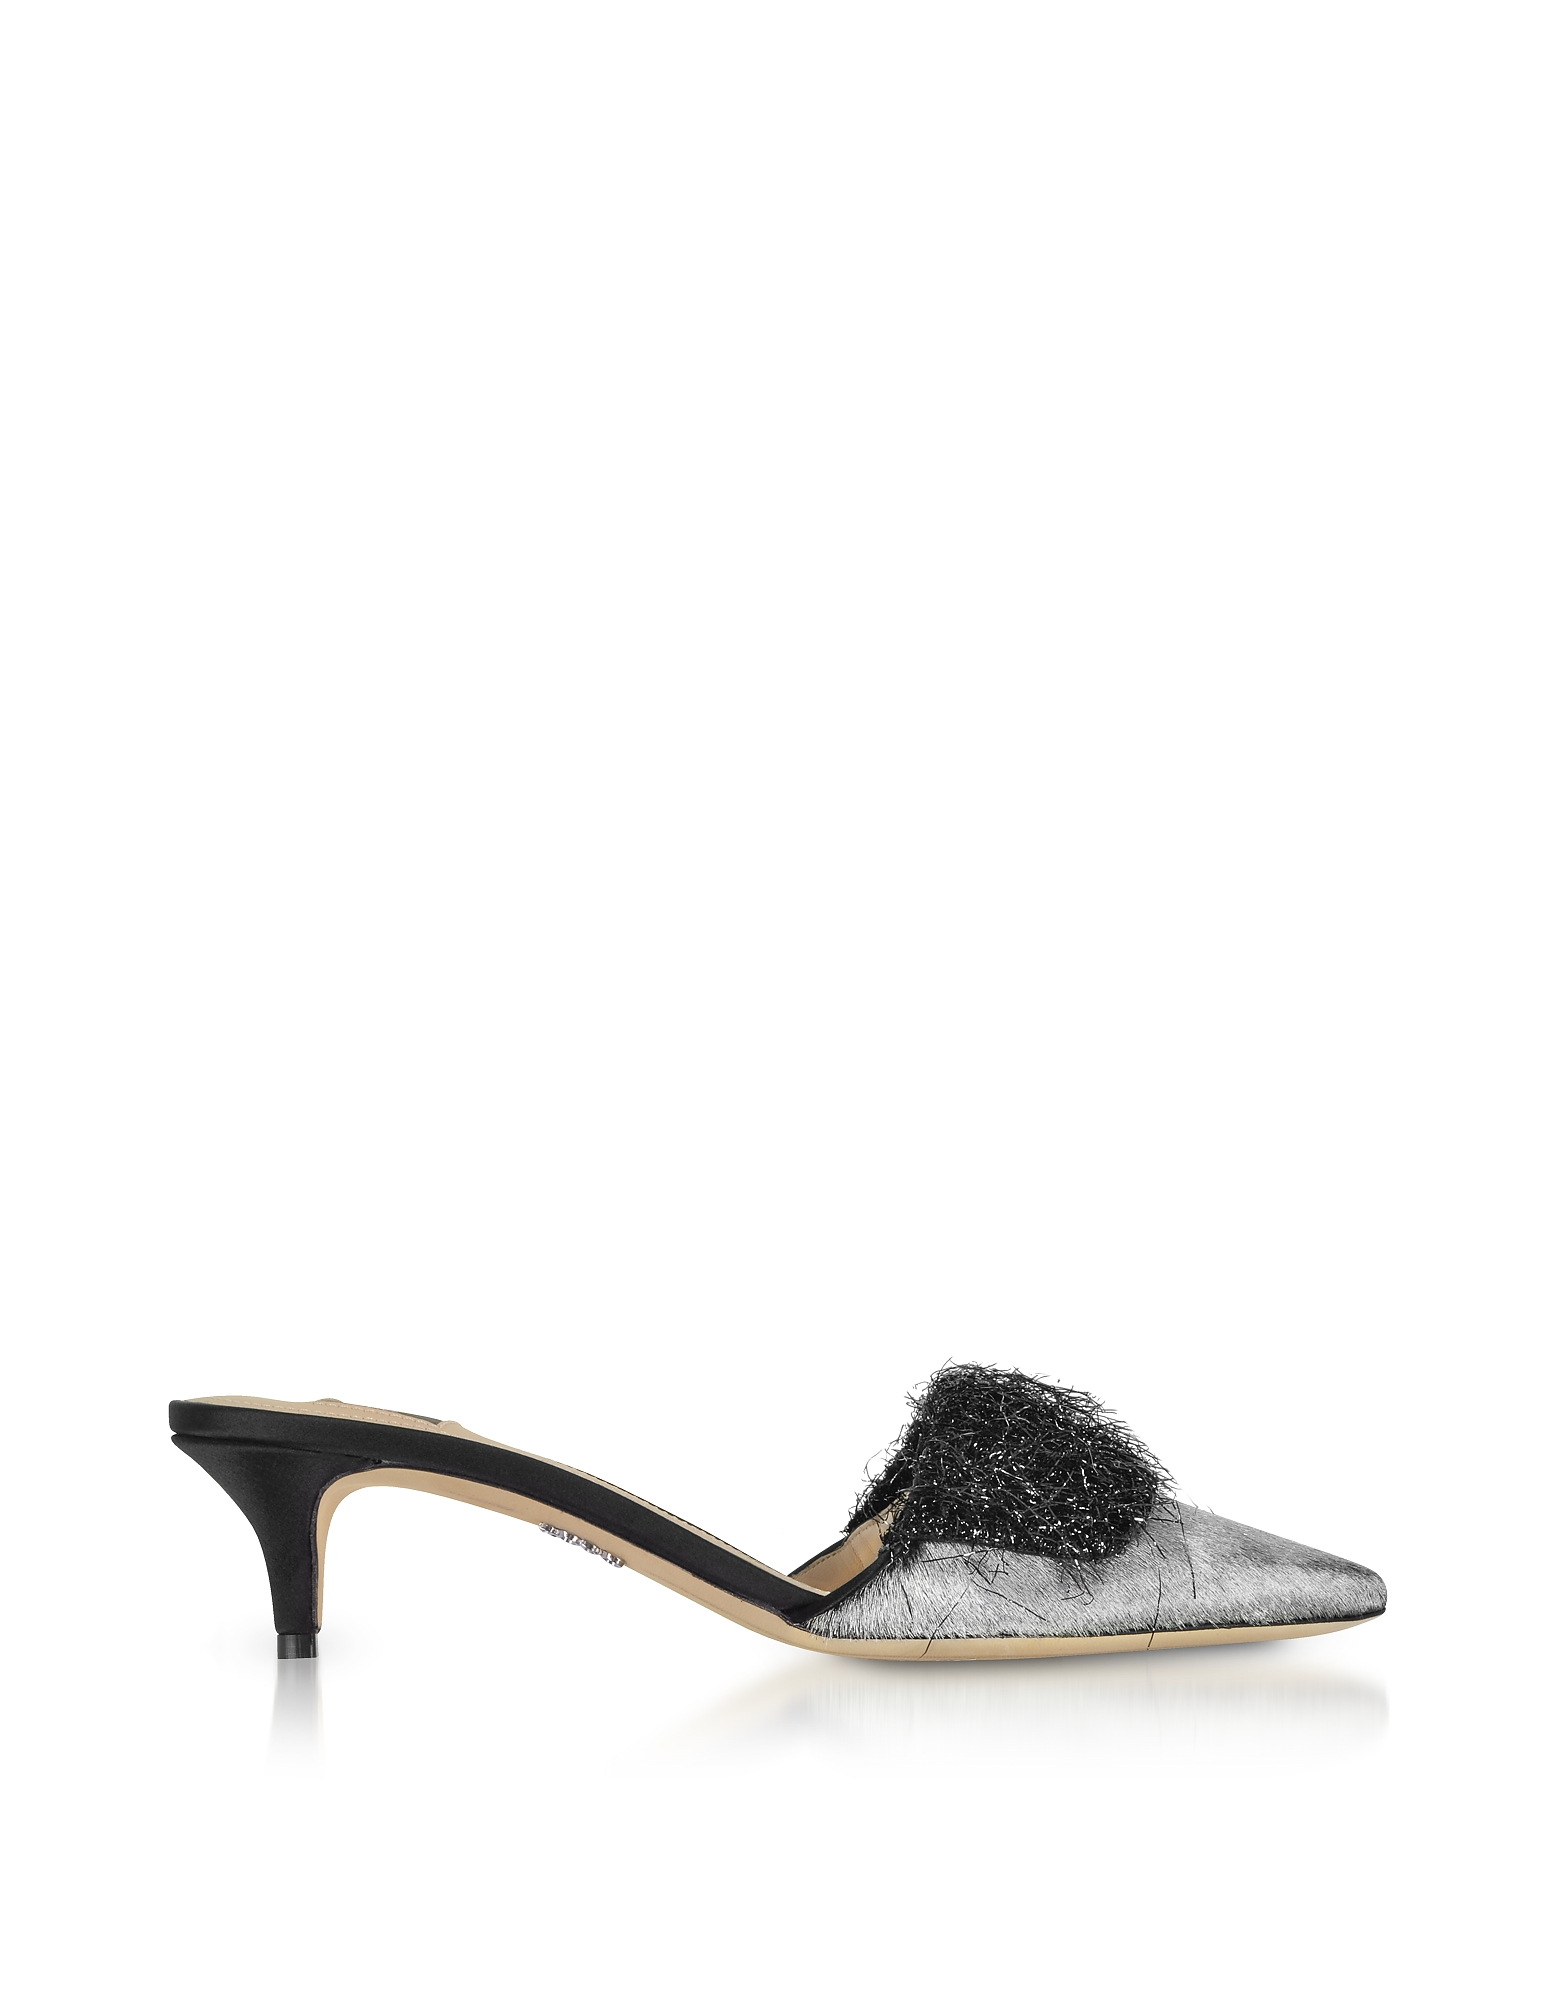 Rodo Designer Shoes, Silver Hair-calf and Black Fabric Kitten-Heel Mules